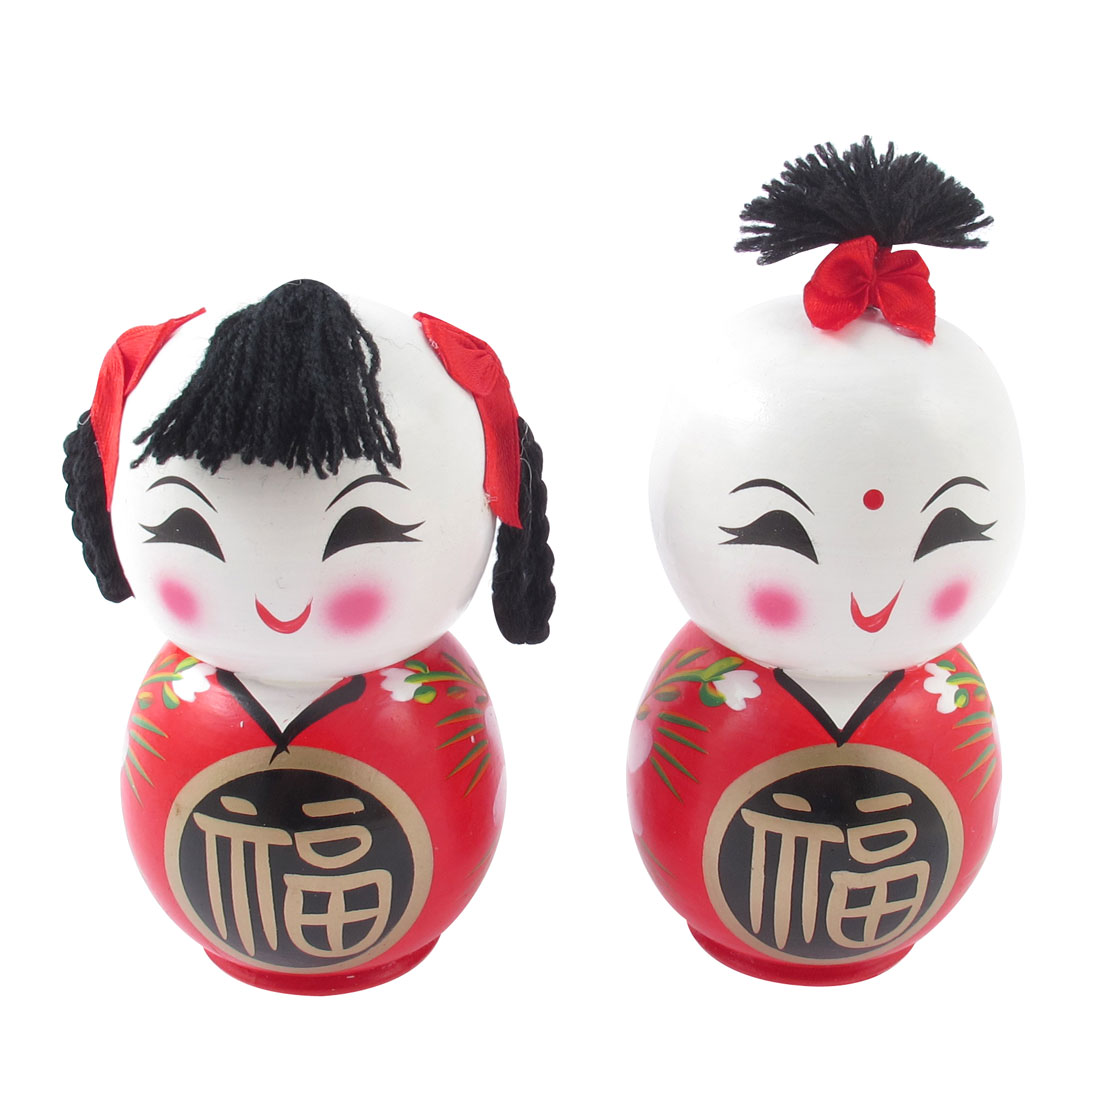 Wooden China Traditional Good Luck Boy Girl Doll Desktop Decor Gift